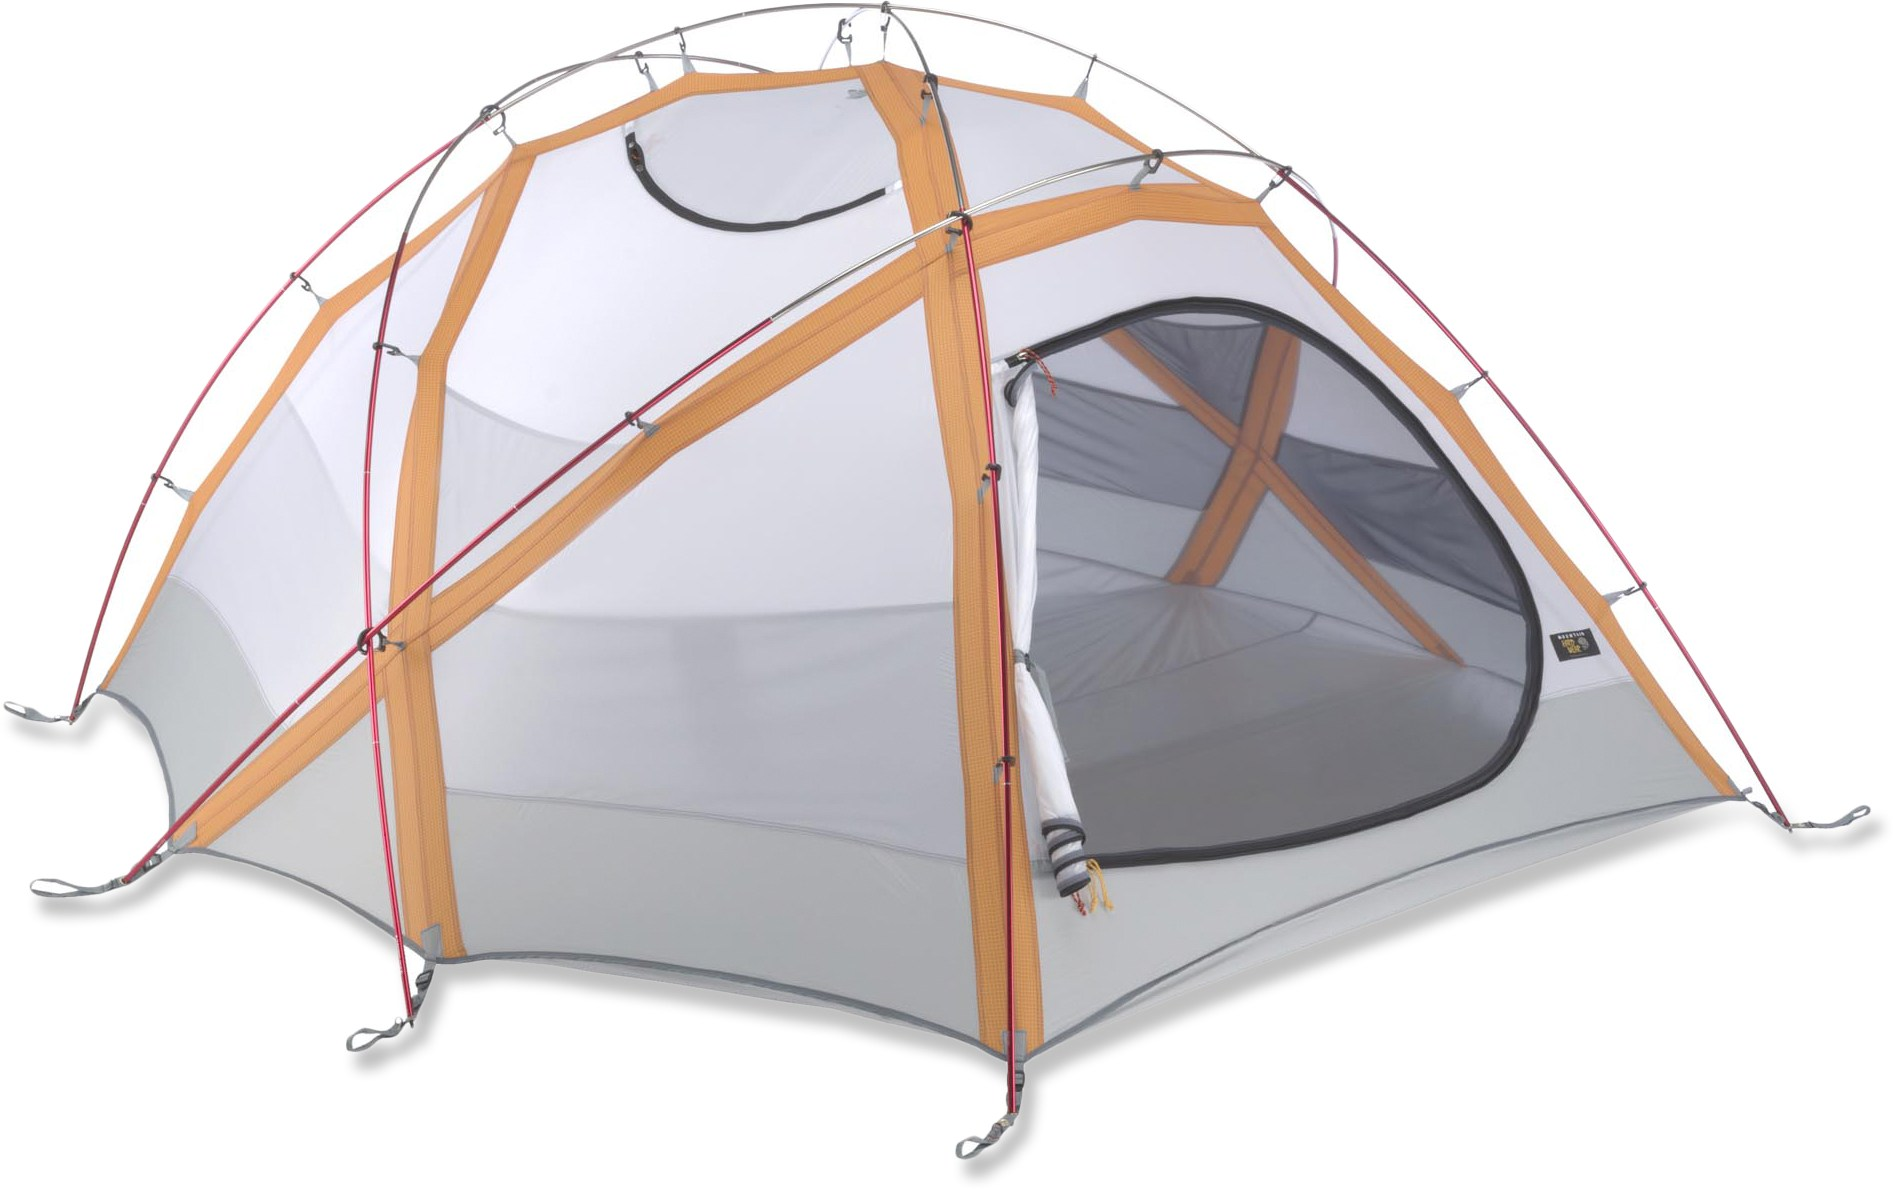 TRANGO 4- re design with evolution tension arch and completely custom fabric sets for a light and stronger tent  sc 1 st  trinity design collaborative - WordPress.com & Mountain Hardwear Equipment Tent design and development | trinity ...